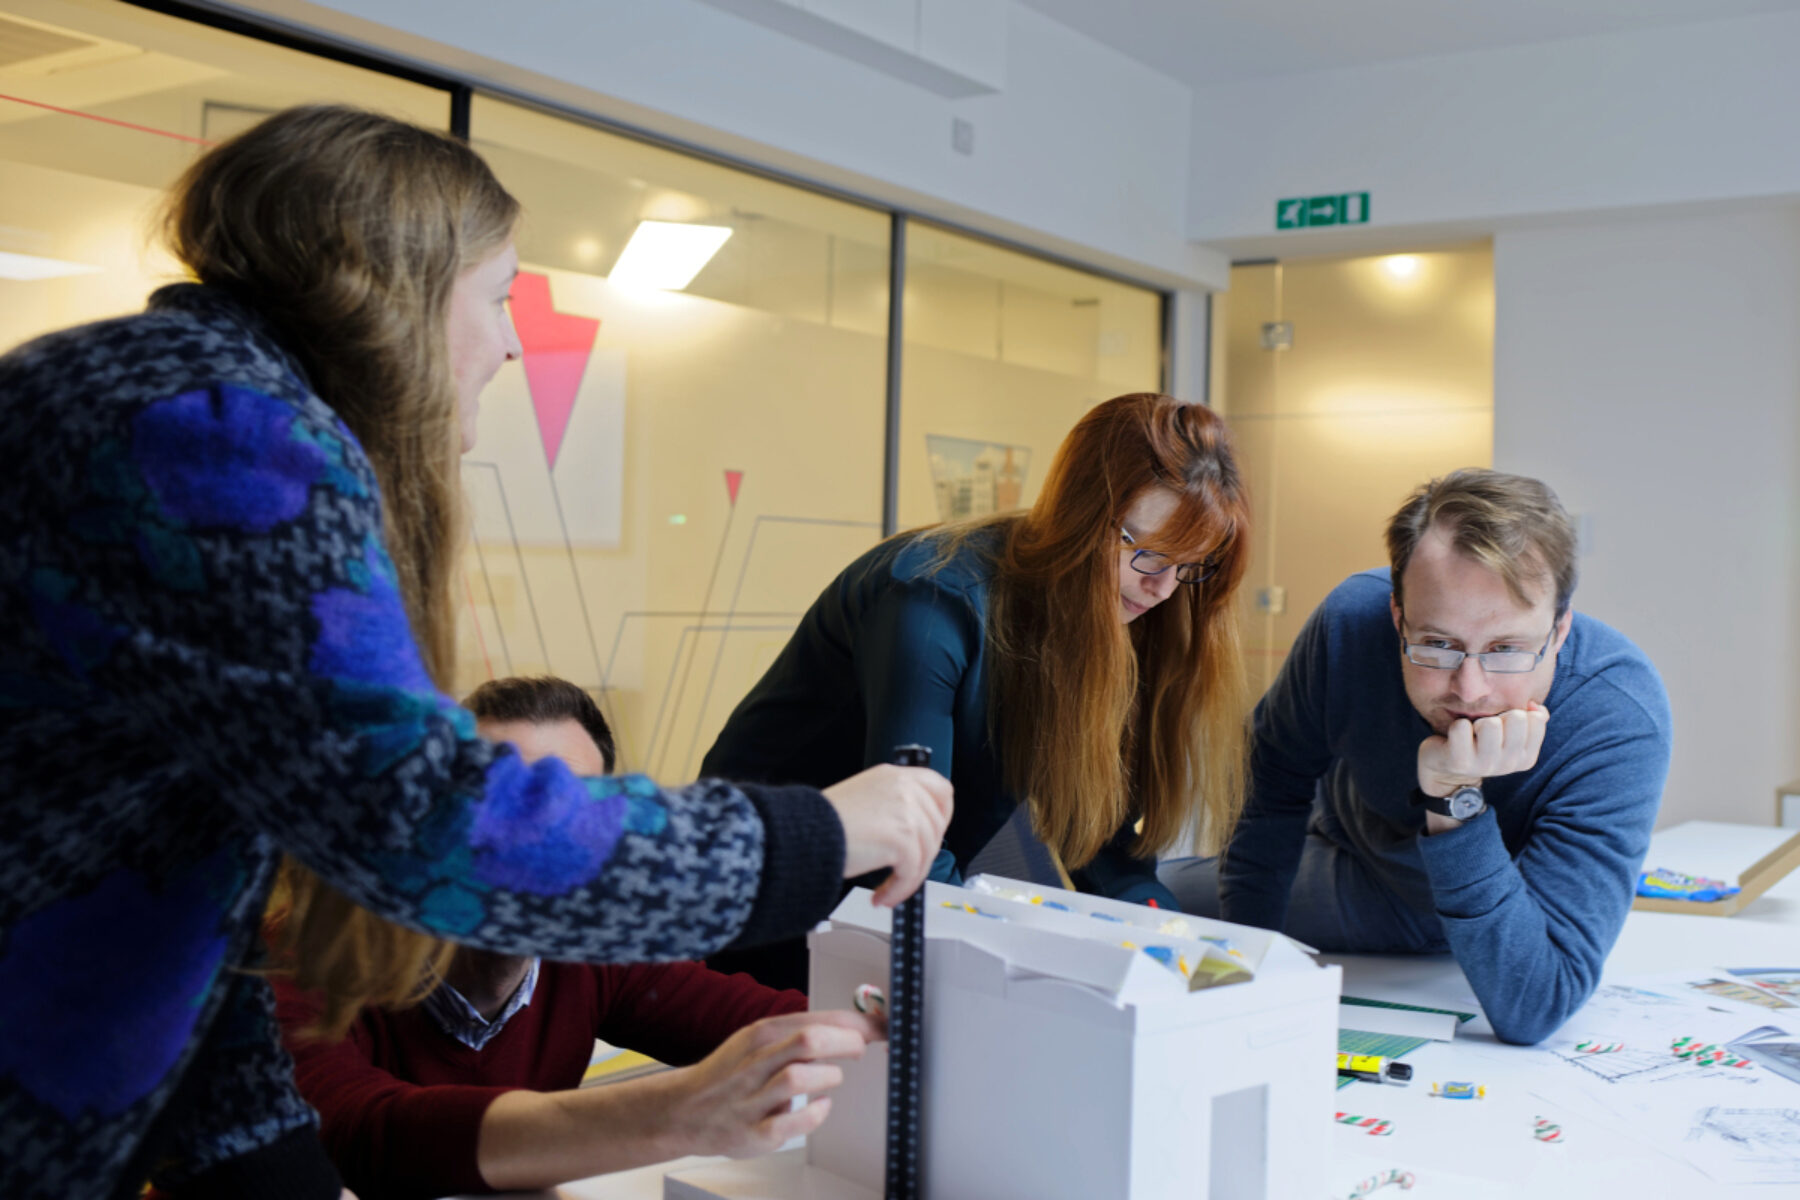 The London studio during a concept meeting